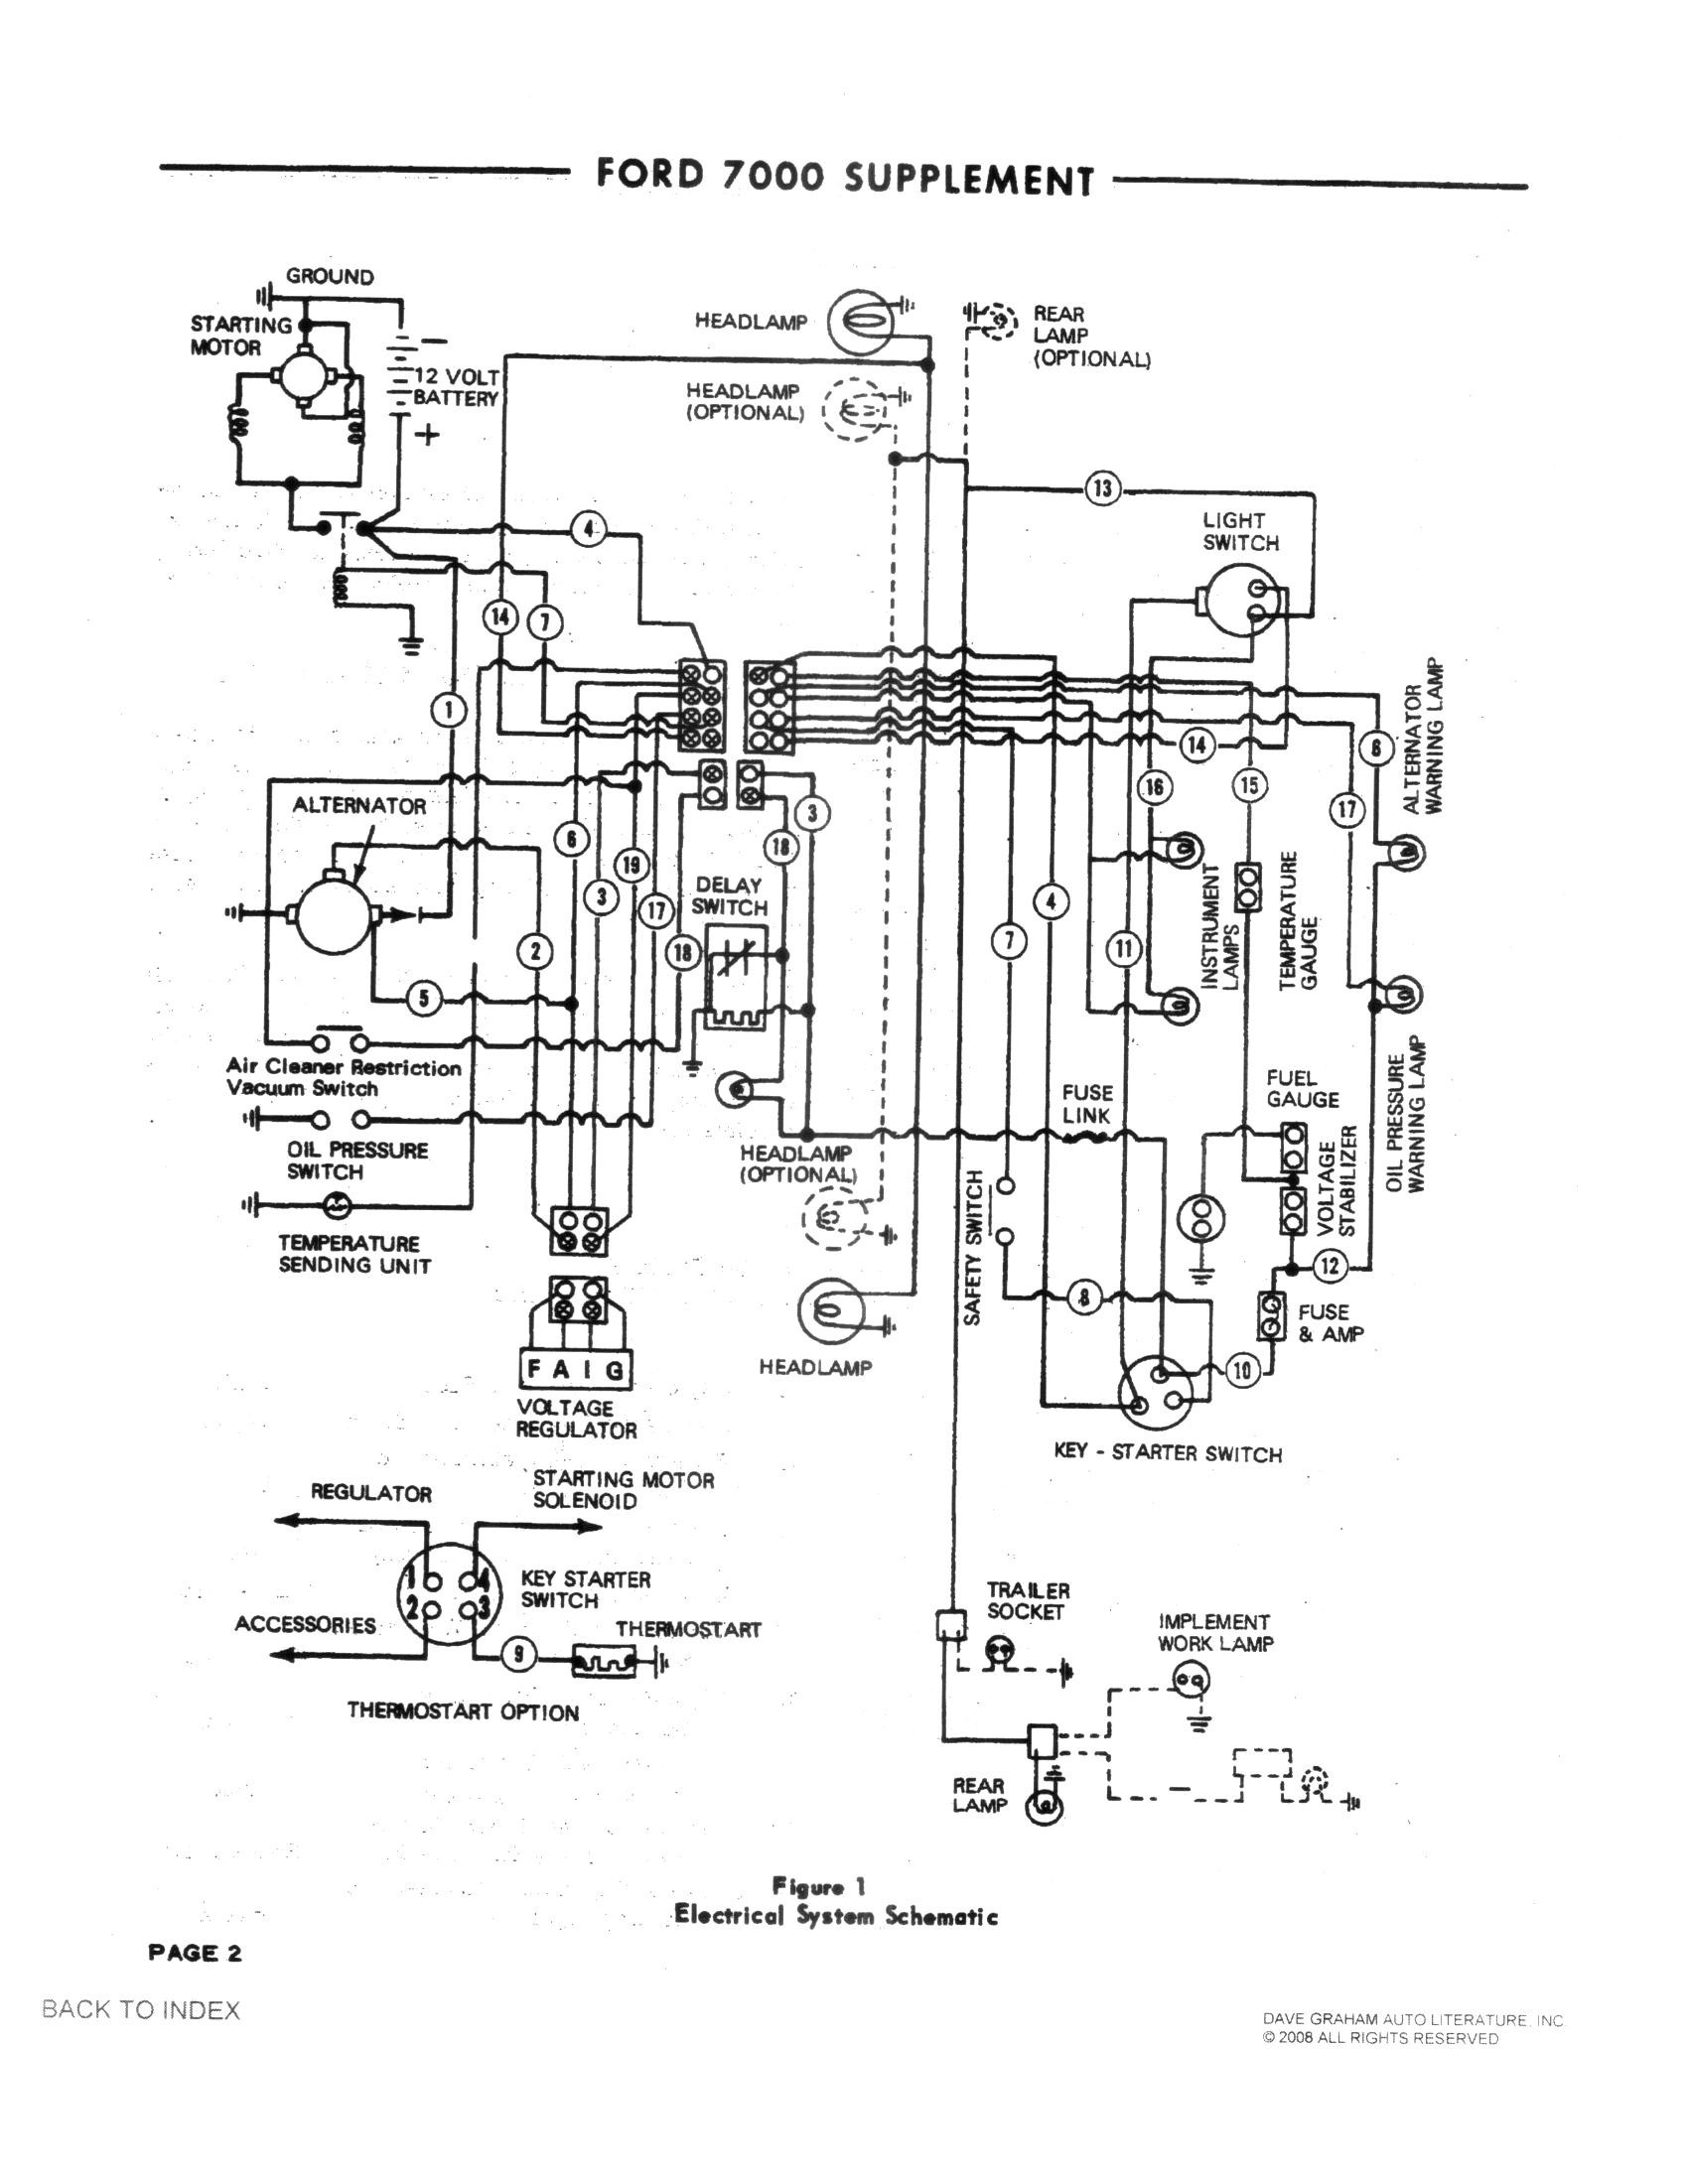 Wiring Diagram On Ford Tractor Get Free Image About